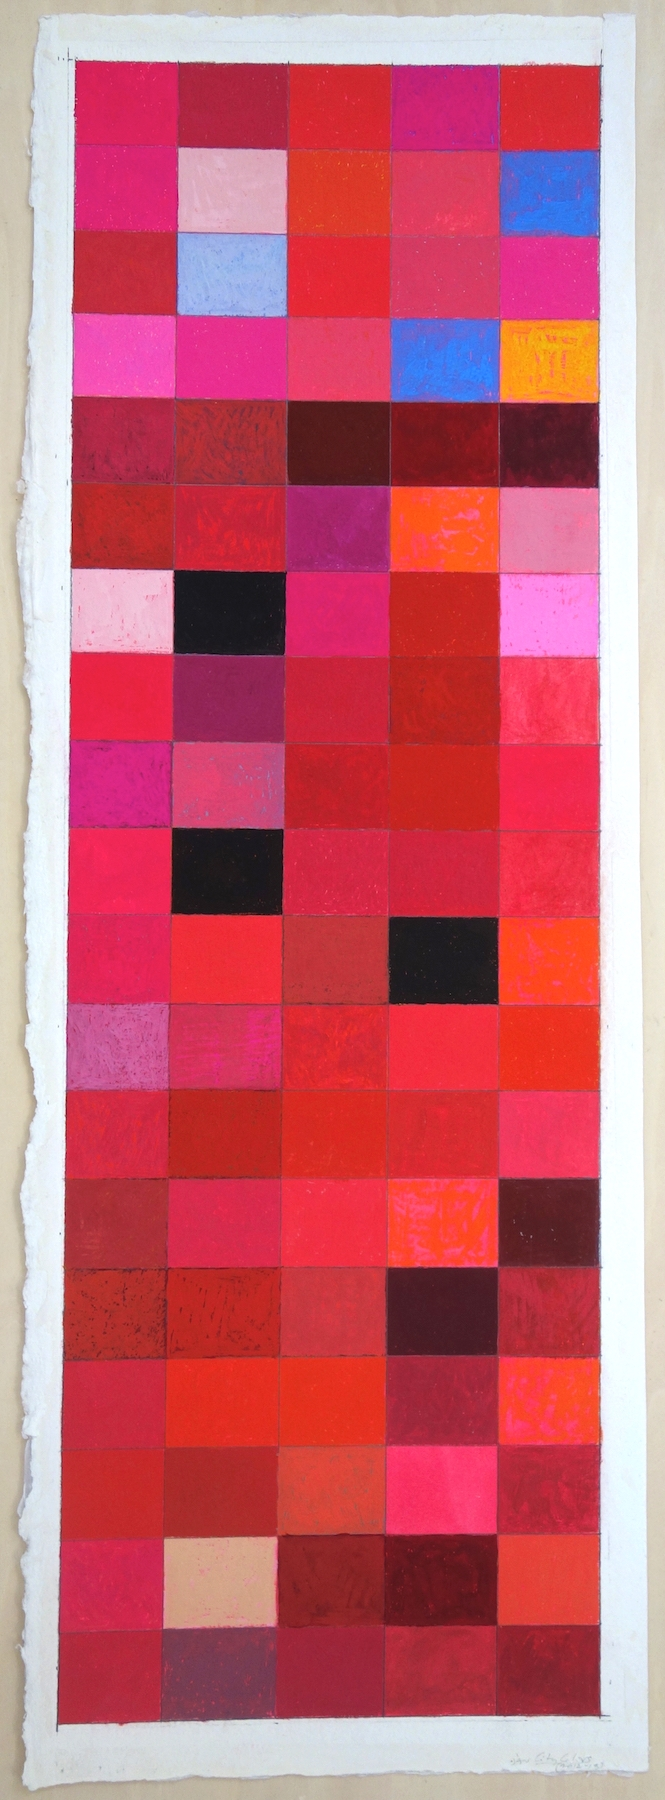 City Colors (2012-13), Gouache on Paper. paper 30 x 10.5; image 28.5 x9 in.